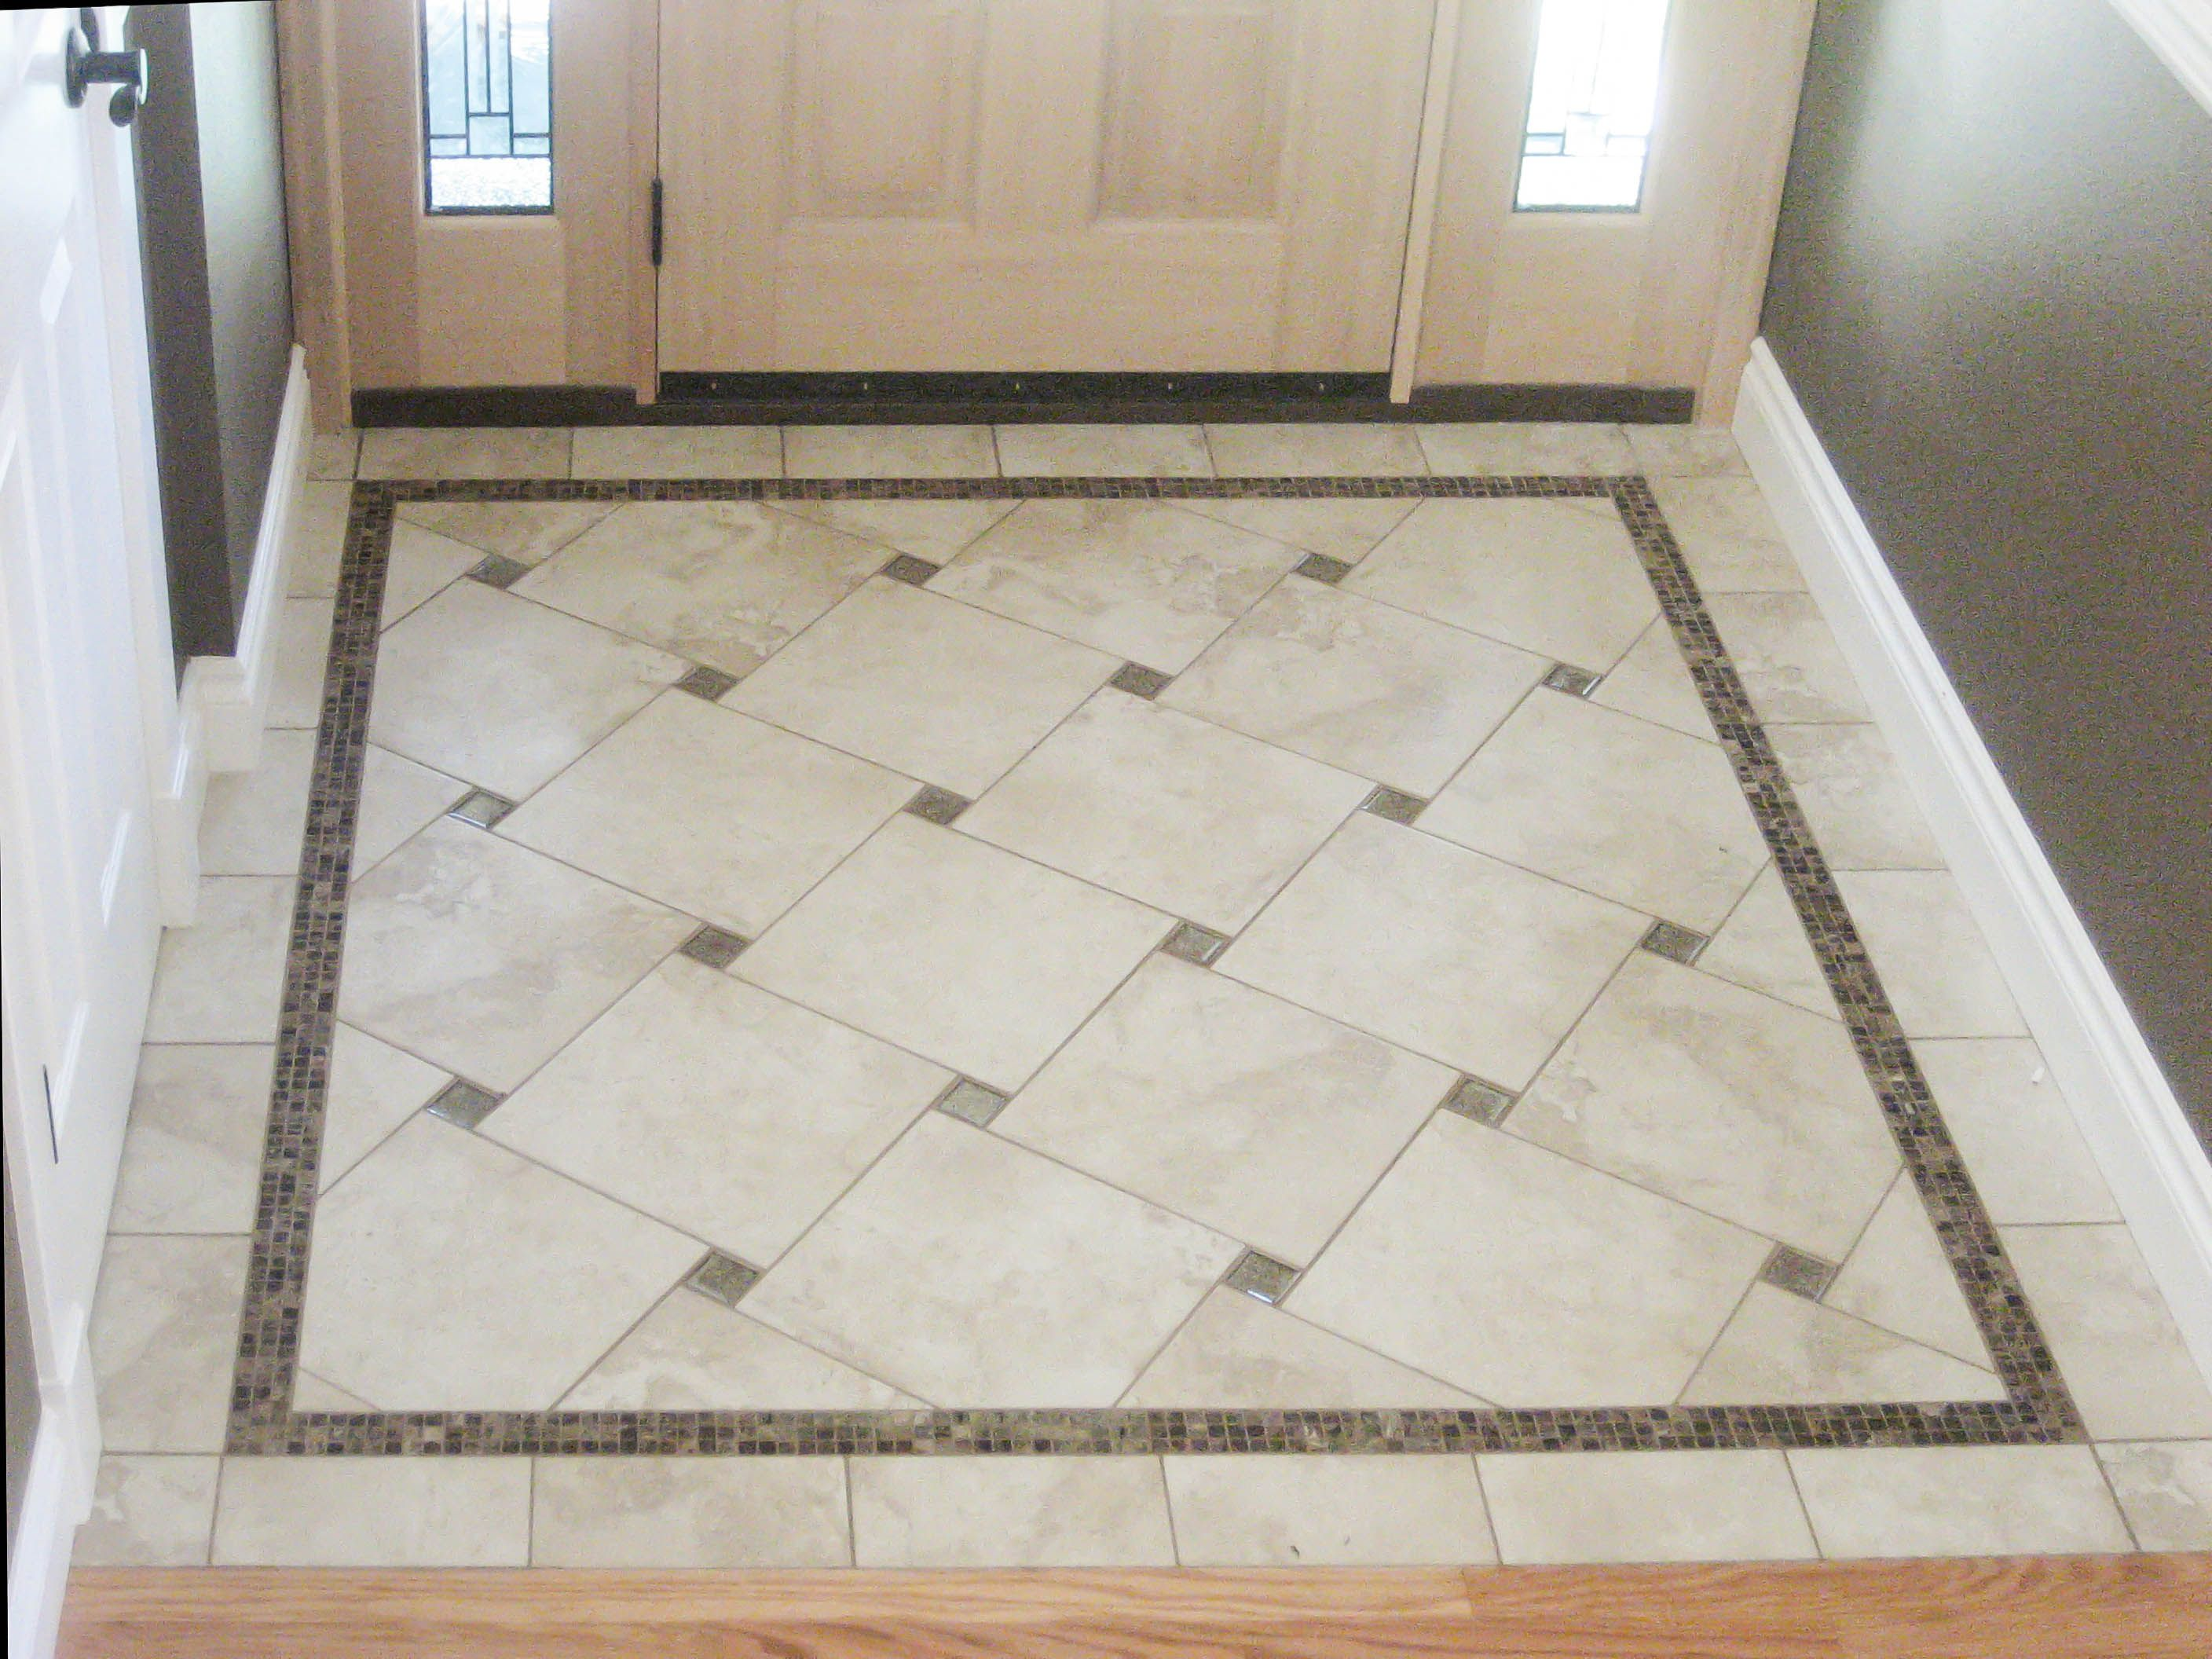 Entry Floor Tile Ideas Photos Gallery Seattle Contractor Irc Service For Arlinghaus Builders Austin Plan